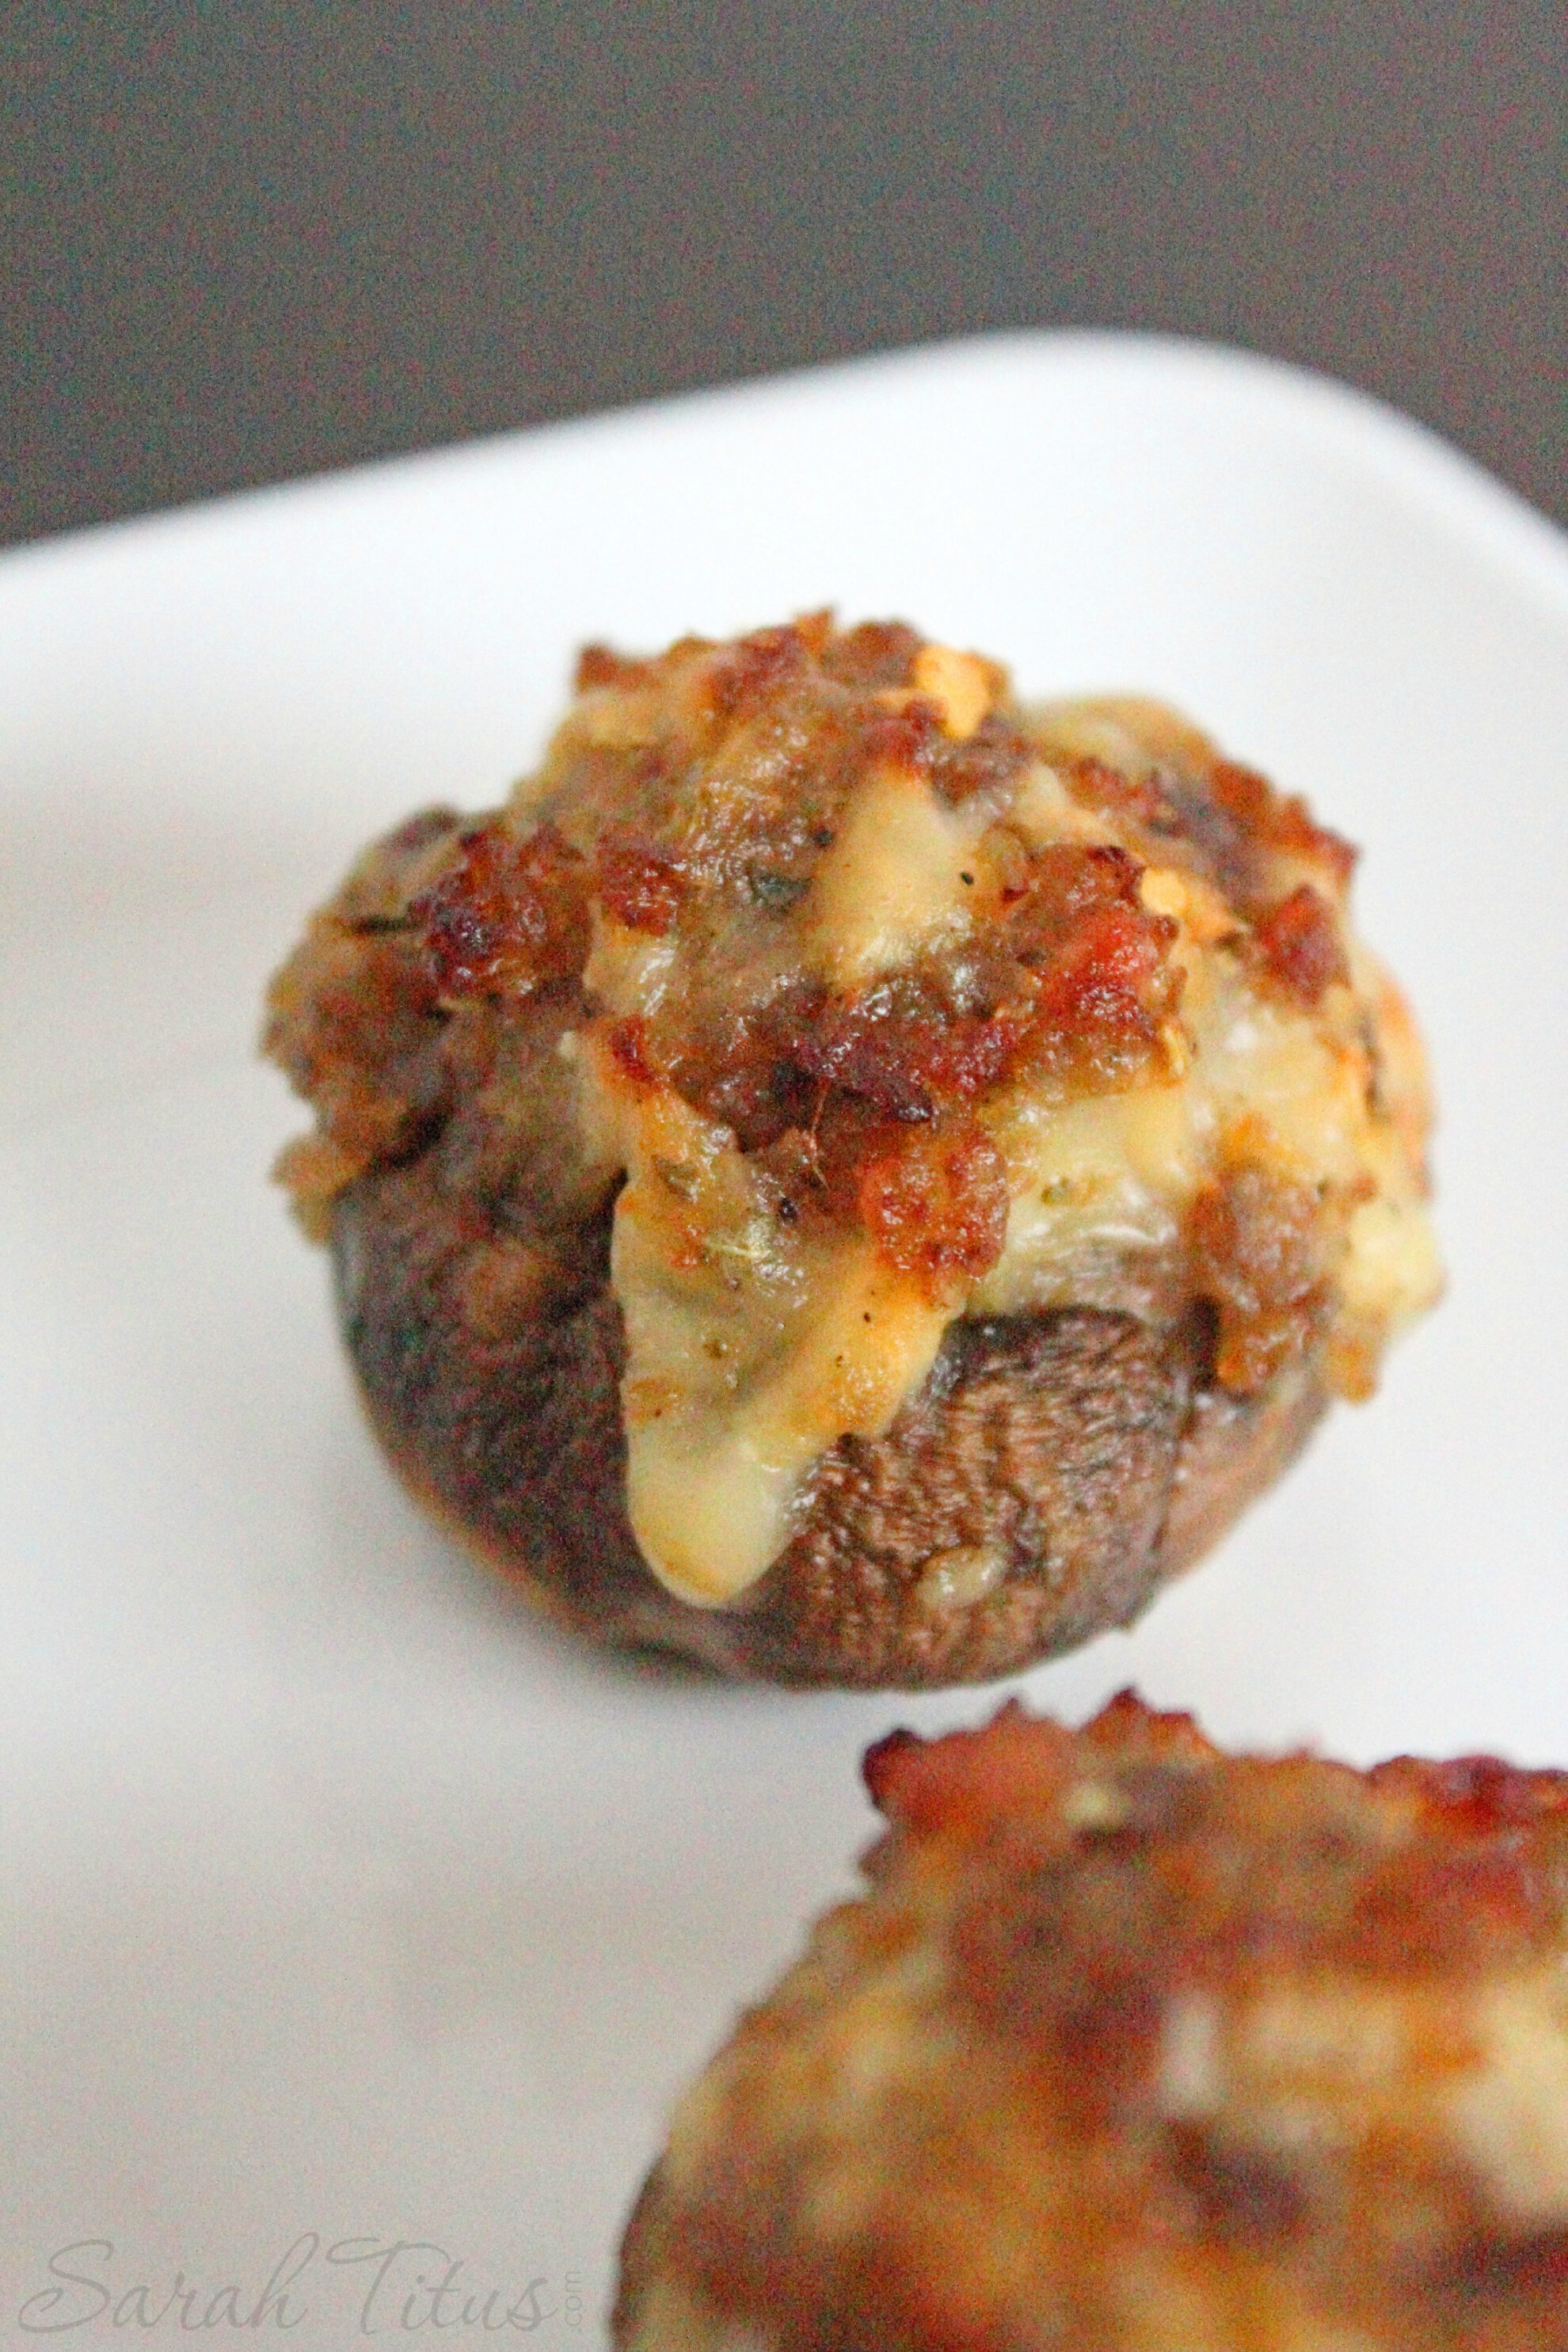 The delicious looking cooked Bite Size Stuffed Mushrooms with Sausage and Arugula